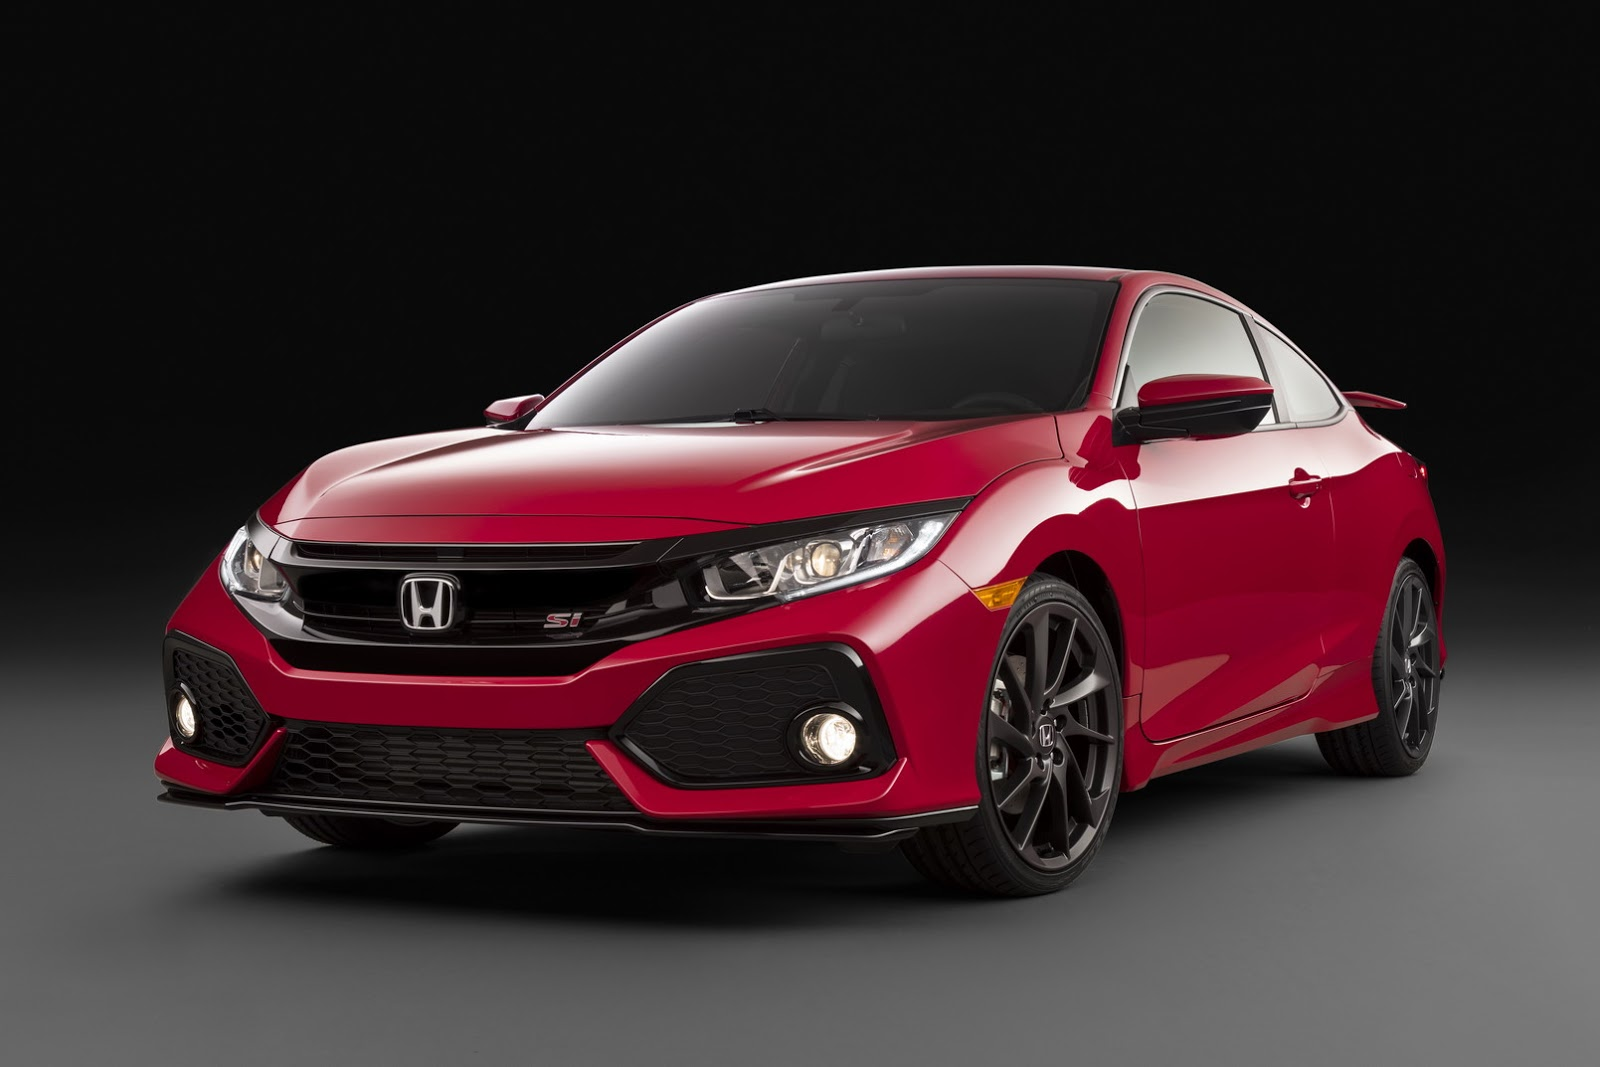 Honda Civic 2017 Prices in Pakistan, Pictures and Reviews